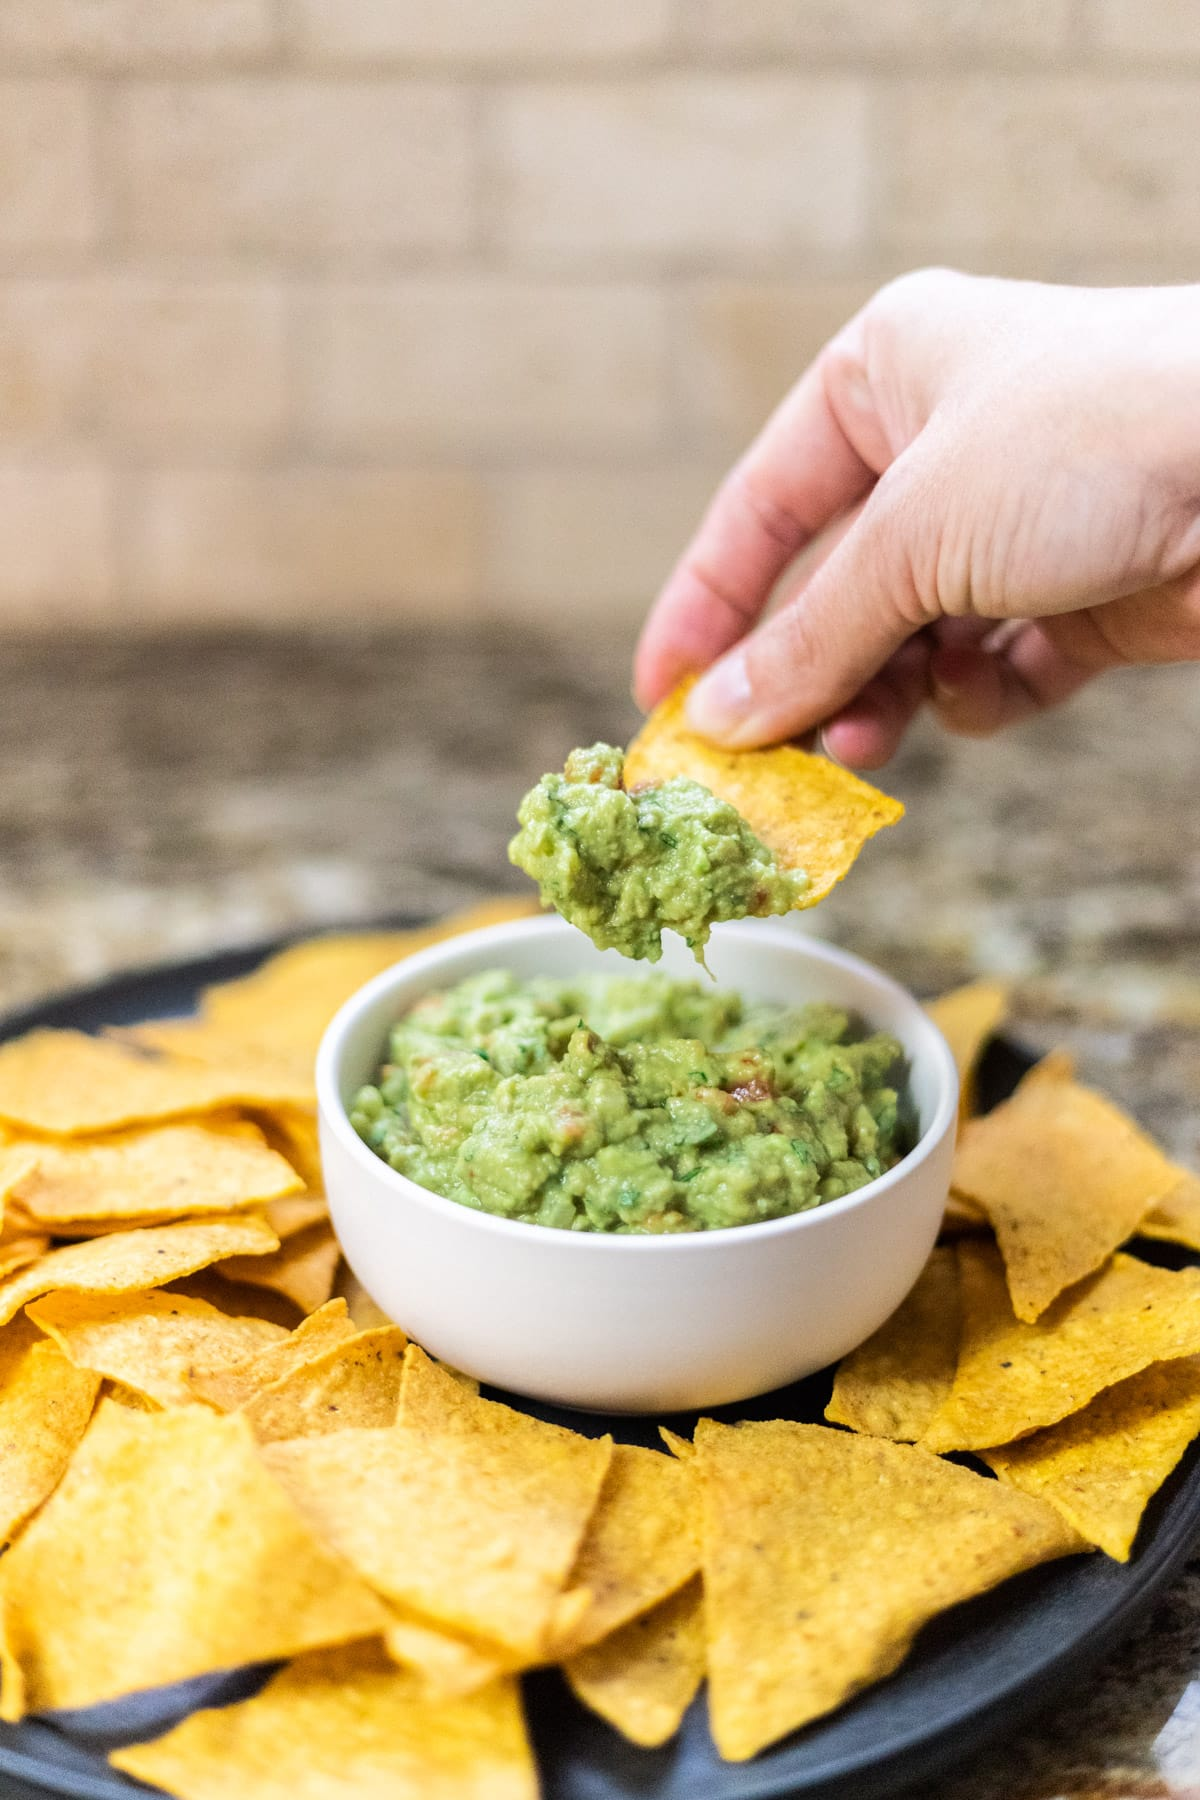 A side view of a hand dipping a tortilla into a bowl of guacamole.